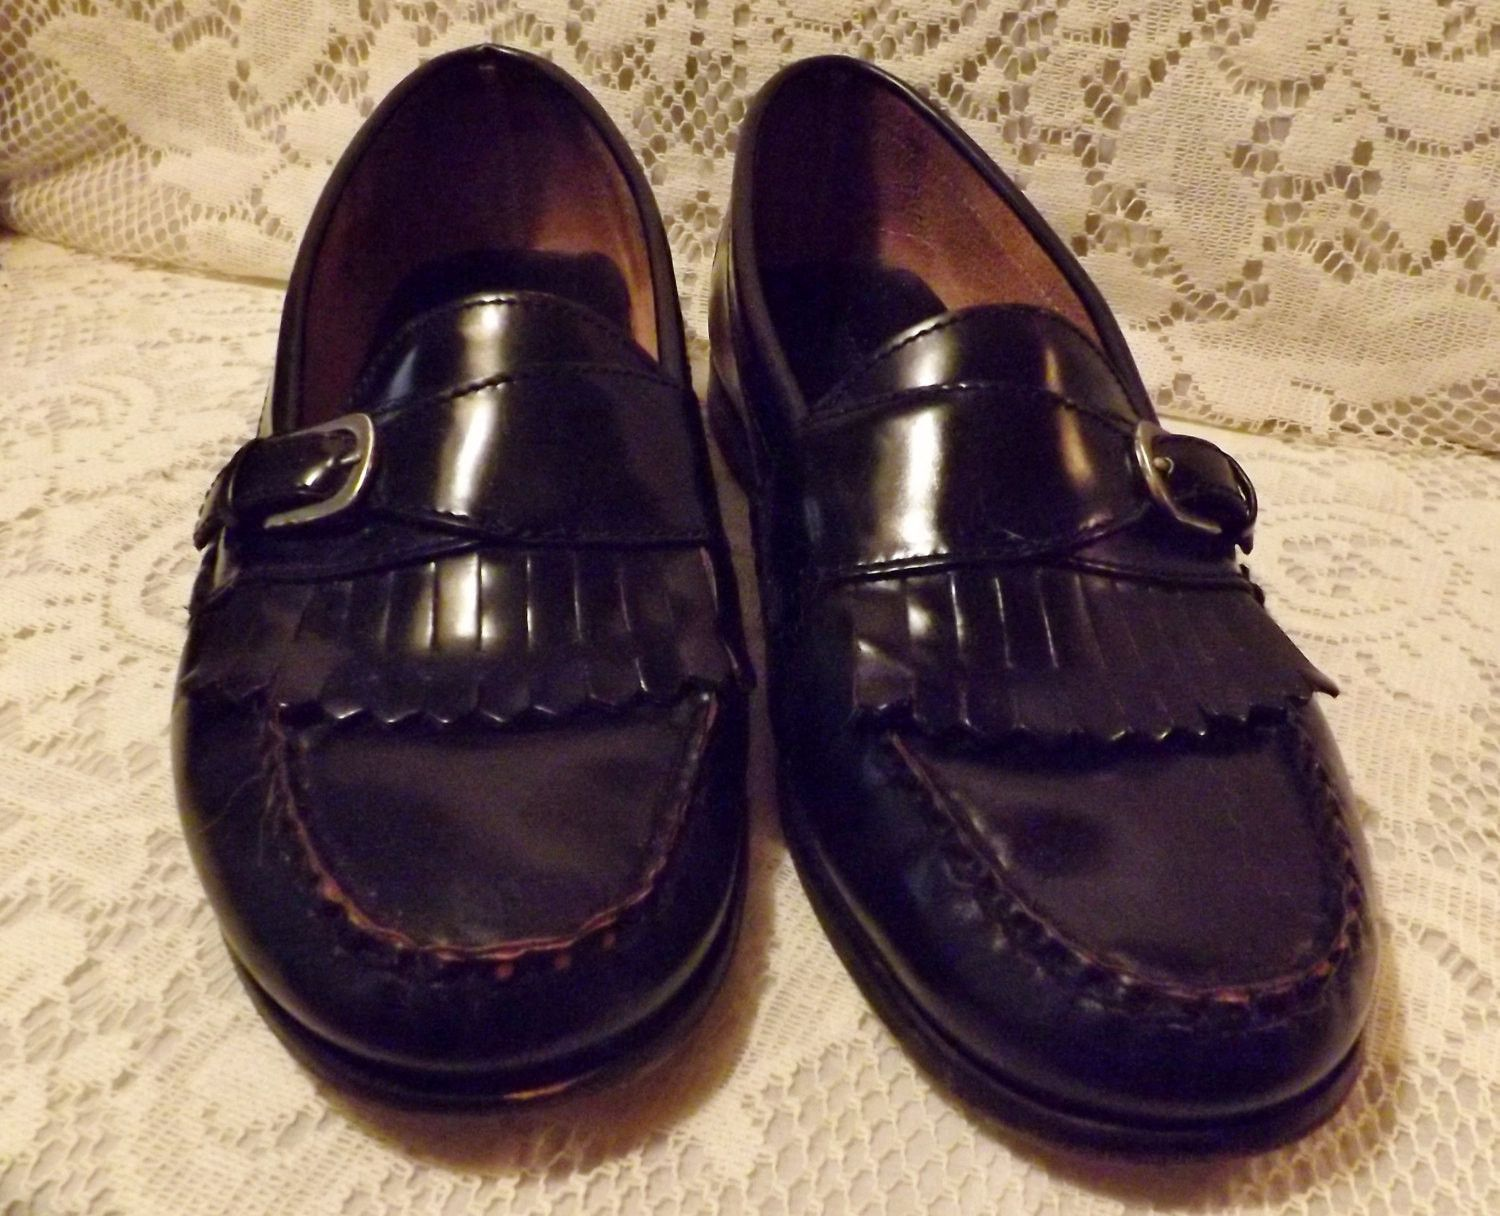 87aa154cfc5 80s Bostonian Mens Black Leather Loafer Fringe and Buckle Size 9 ...